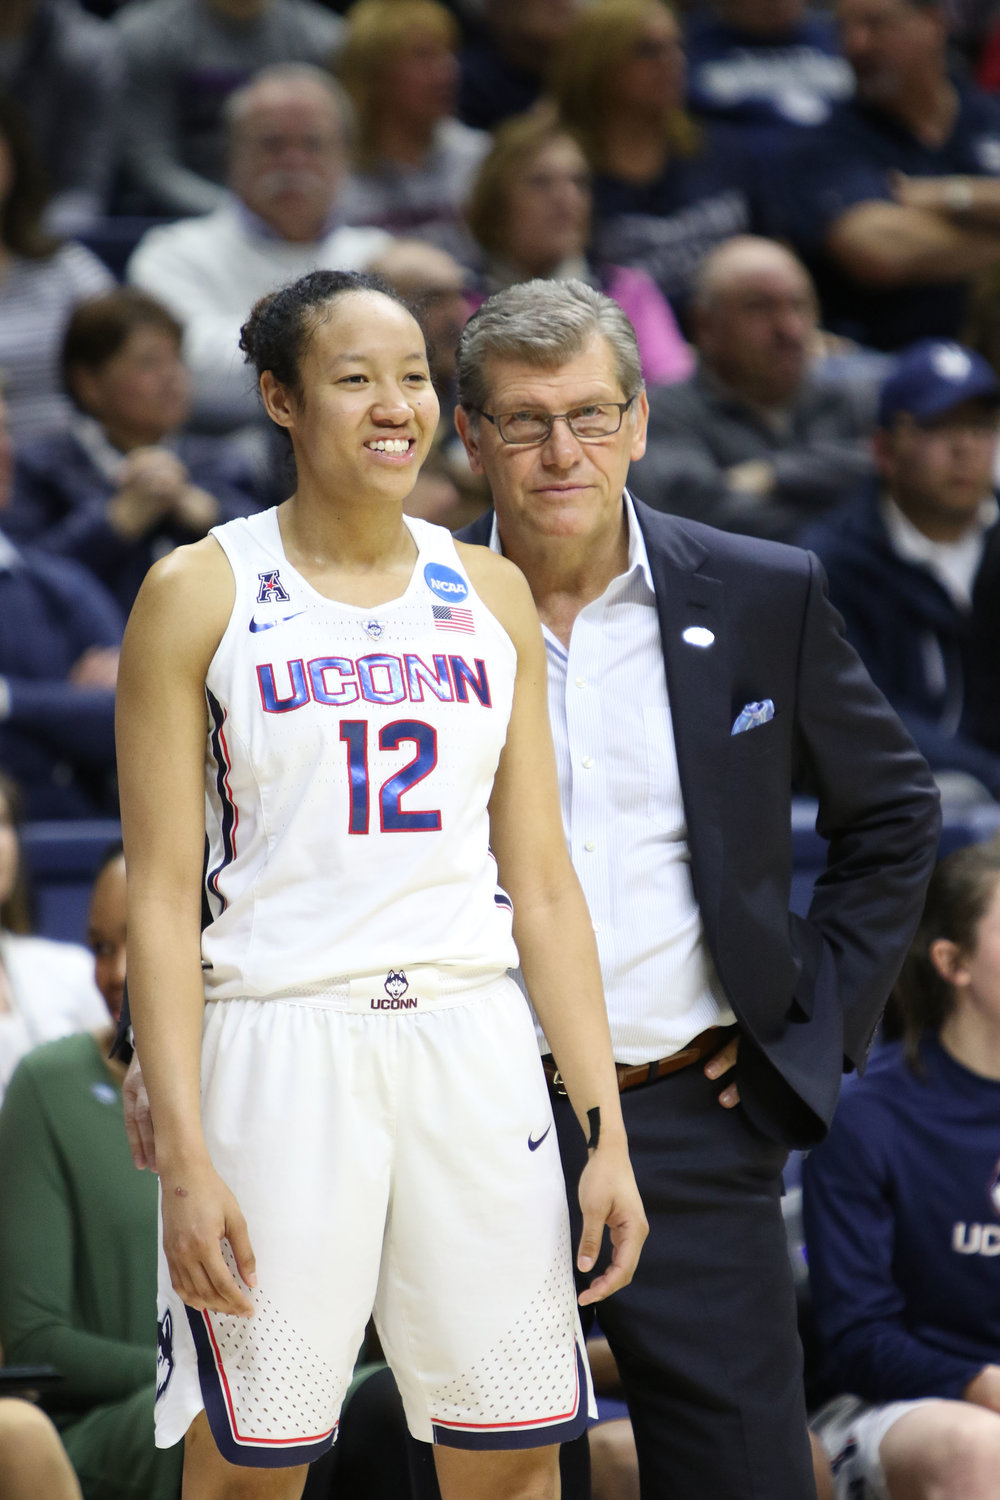 The UConn women's basketball team defeated the Syracuse Orange 94-64 on Monday night at Gamble Pavilion to advance to their 24th straight Sweet Sixteen. Kia Nurse led the Huskies with 29 points.  (Jackson Haigis/The Daily Campus)